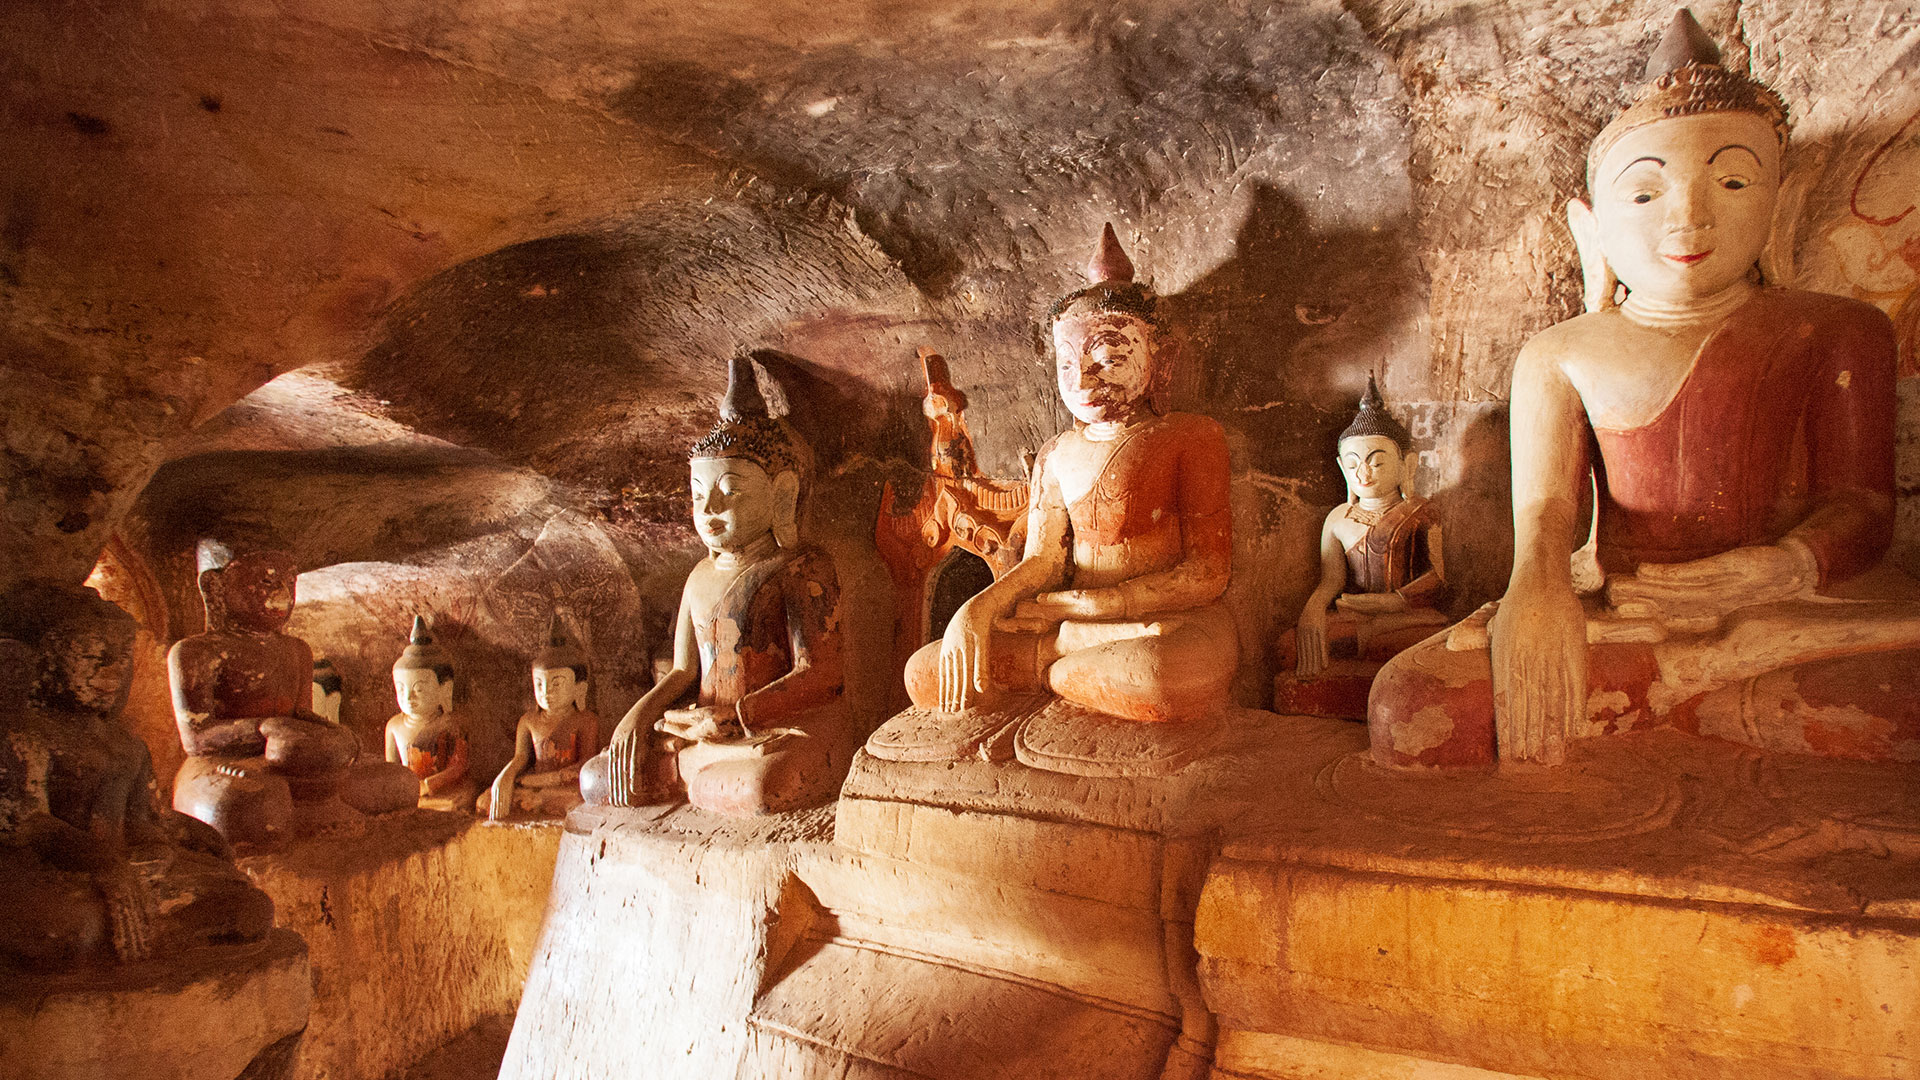 Carved buddhas in cave, Myanmar